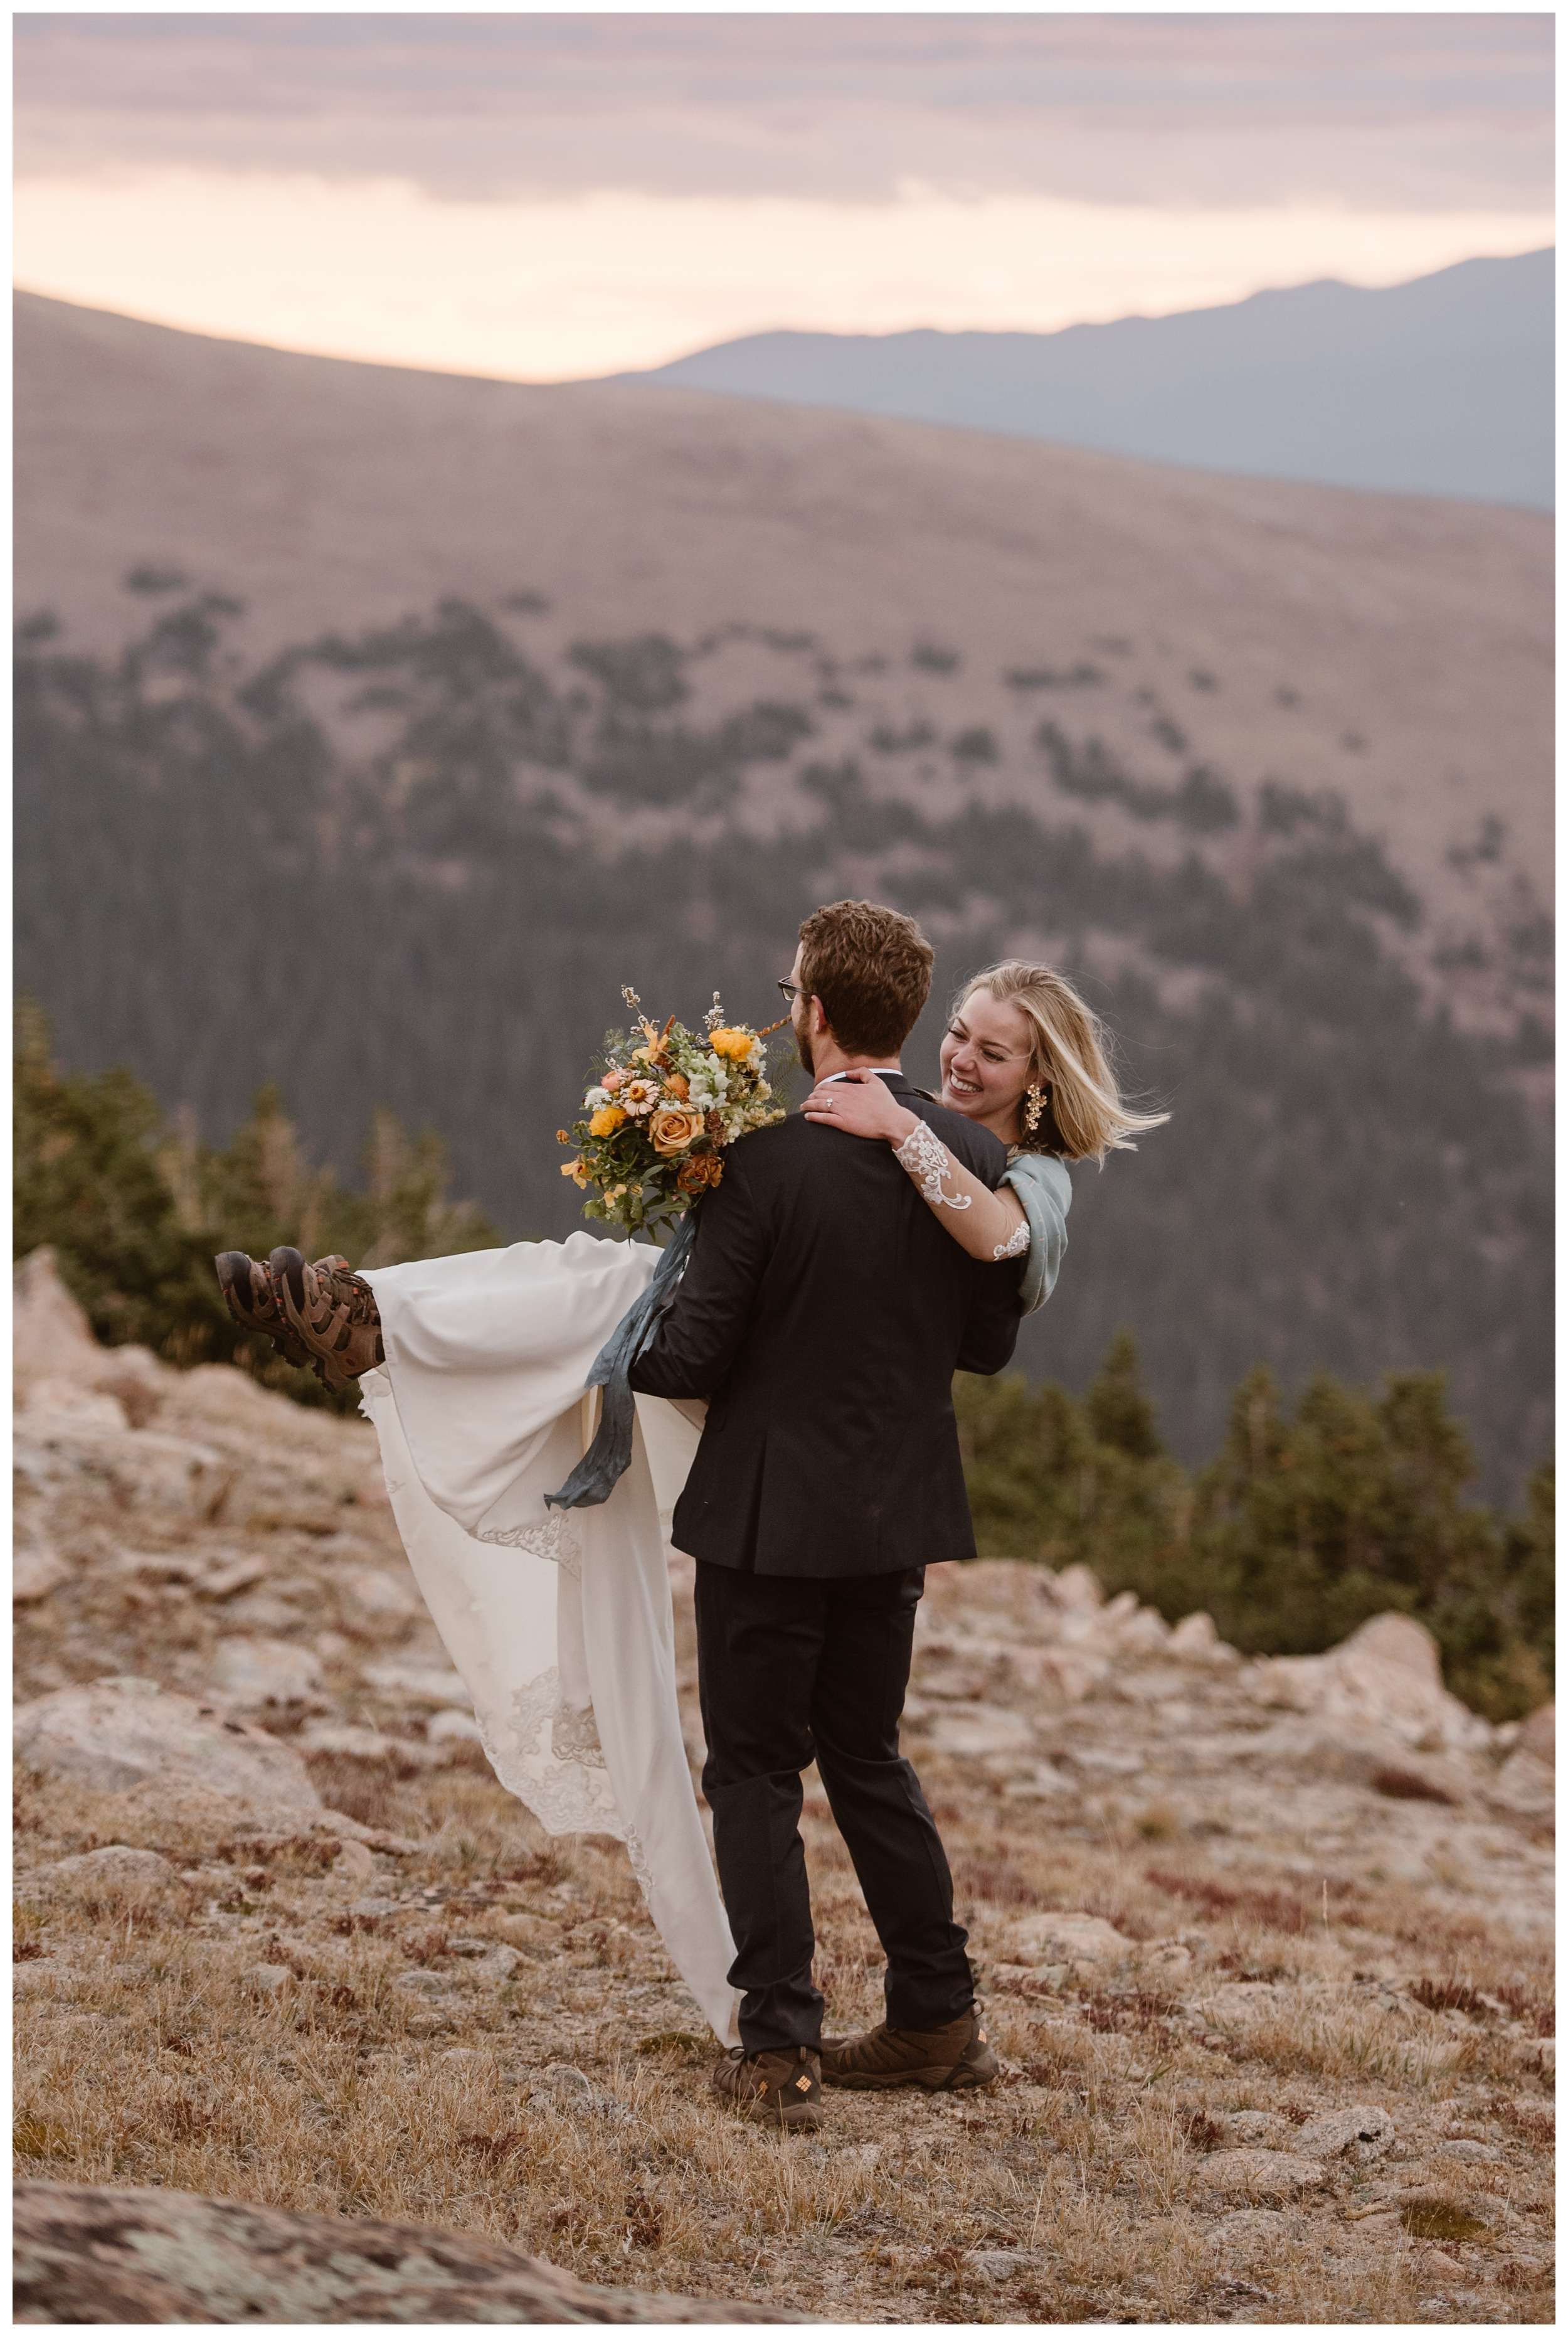 Embrace each other freely during your elopement day! Where you elope and how you say your vows matters! Photo by Maddie Mae, Adventure Instead Elopement Photographers.